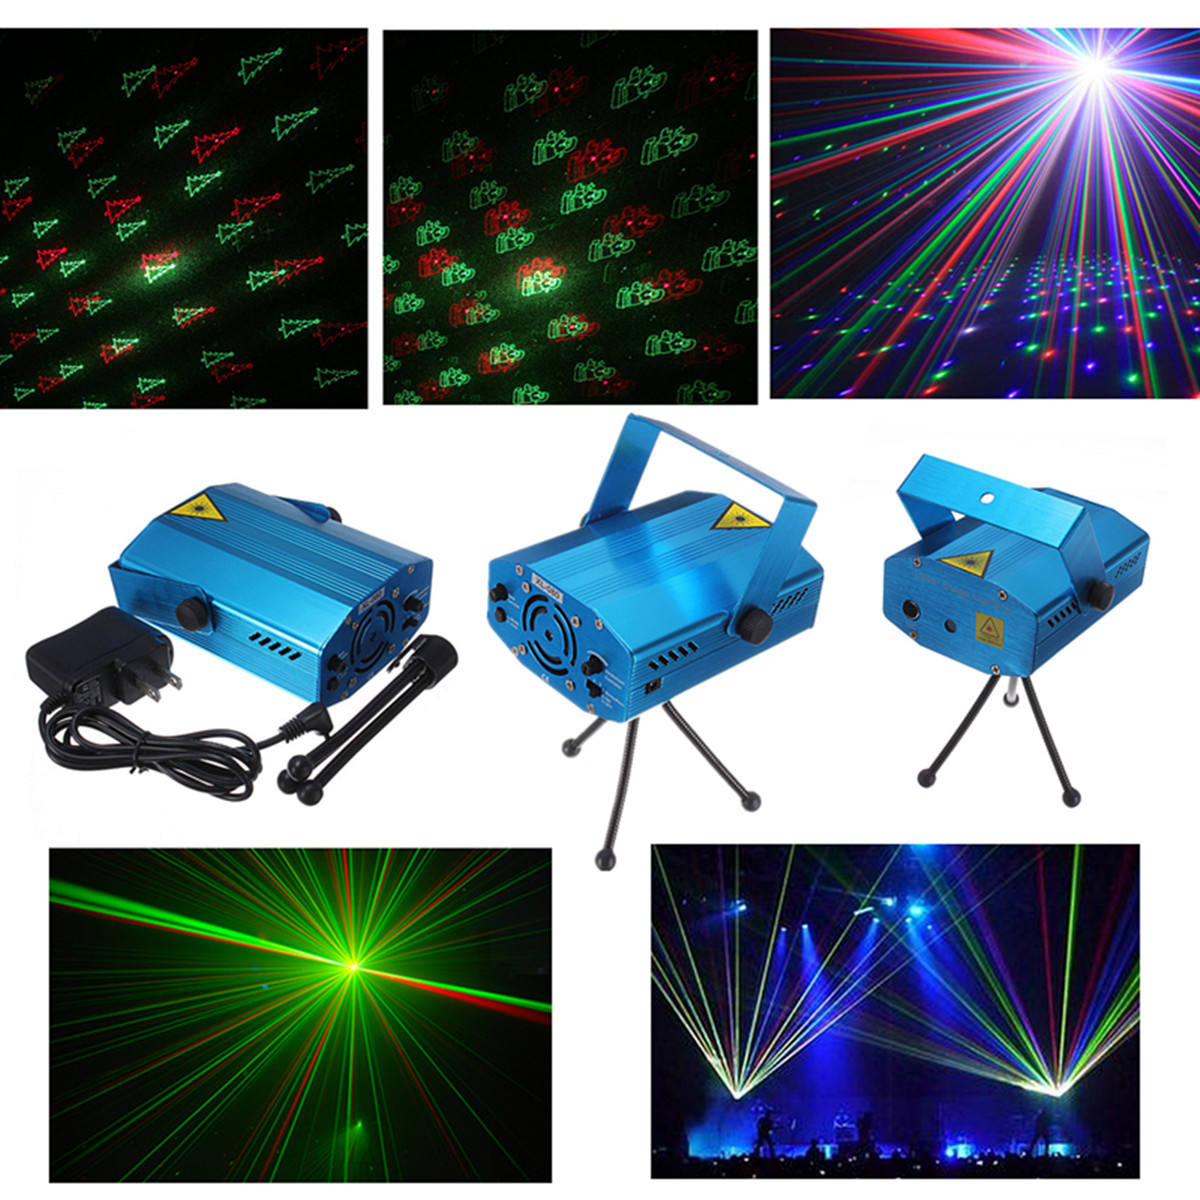 M.way MIni LED Strobe Sound Voice Actived Auto Flash RGB Led Laser Stage Light, Party,Disco, DJ Lights  Party Bars KTV